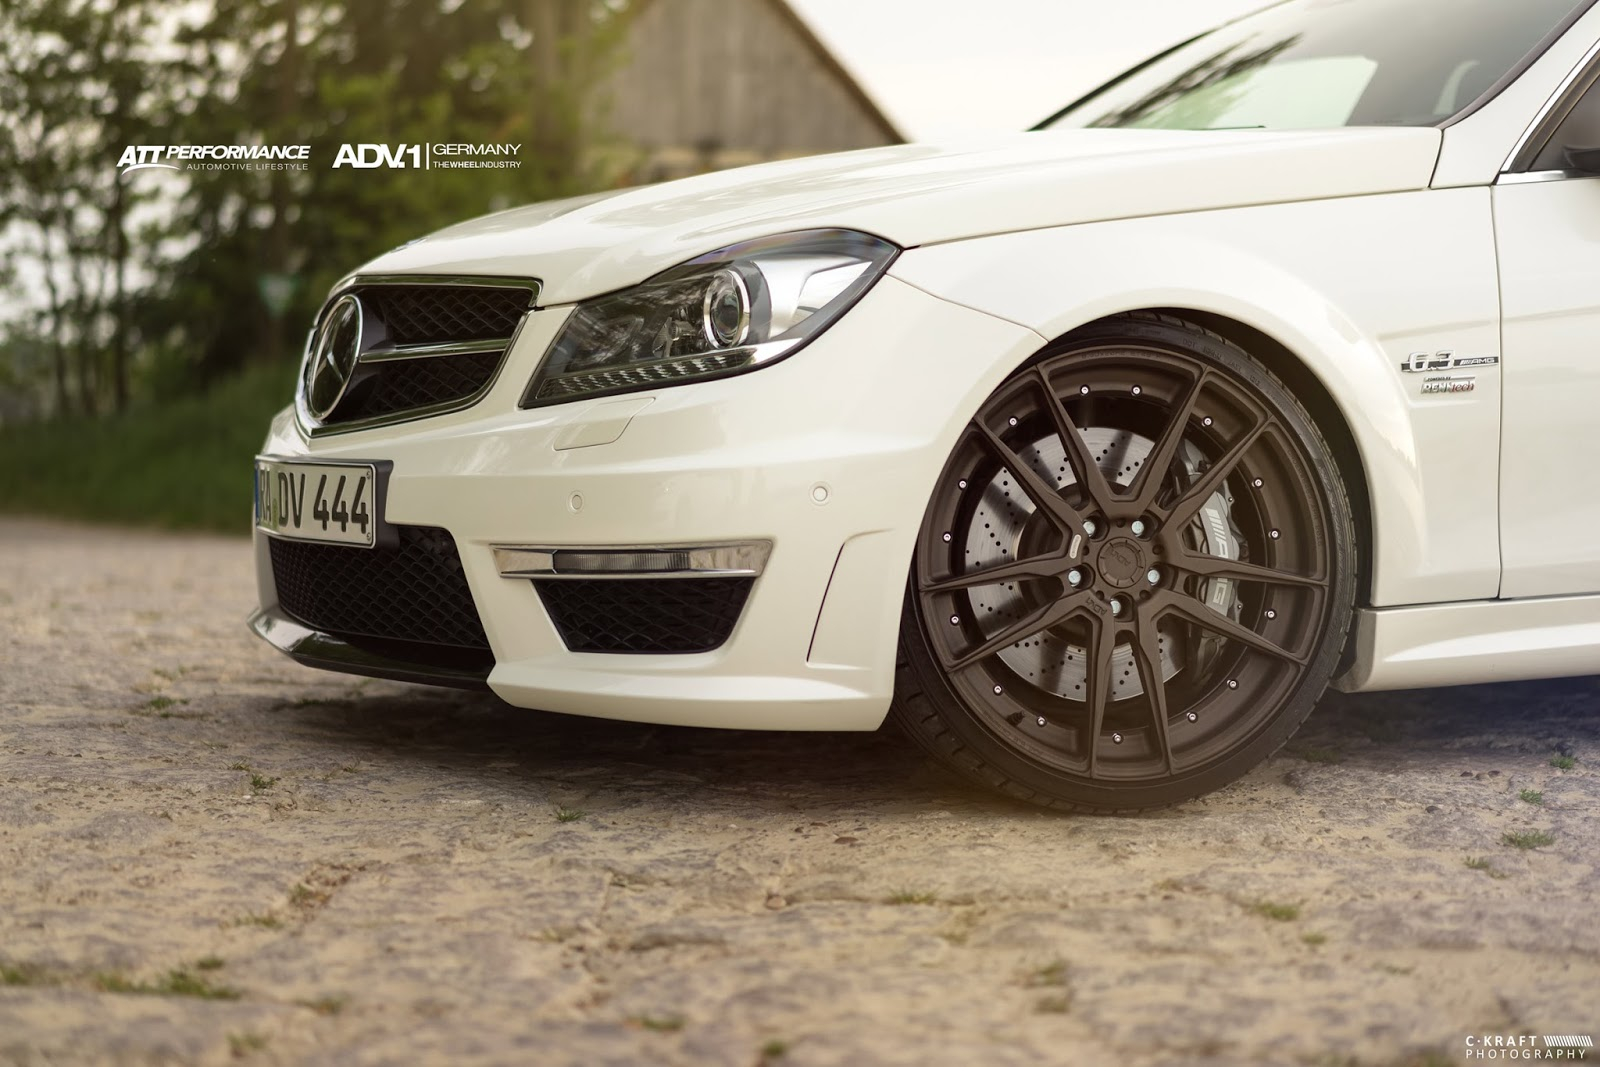 also Mercedes W C Amg Hre Perfomance Wheels further Charleston Cars And Coffee Gallery Mercedes Benz E Cosworth Is For Sale likewise X moreover Mercedes W S Wald. on 1989 mercedes 190e